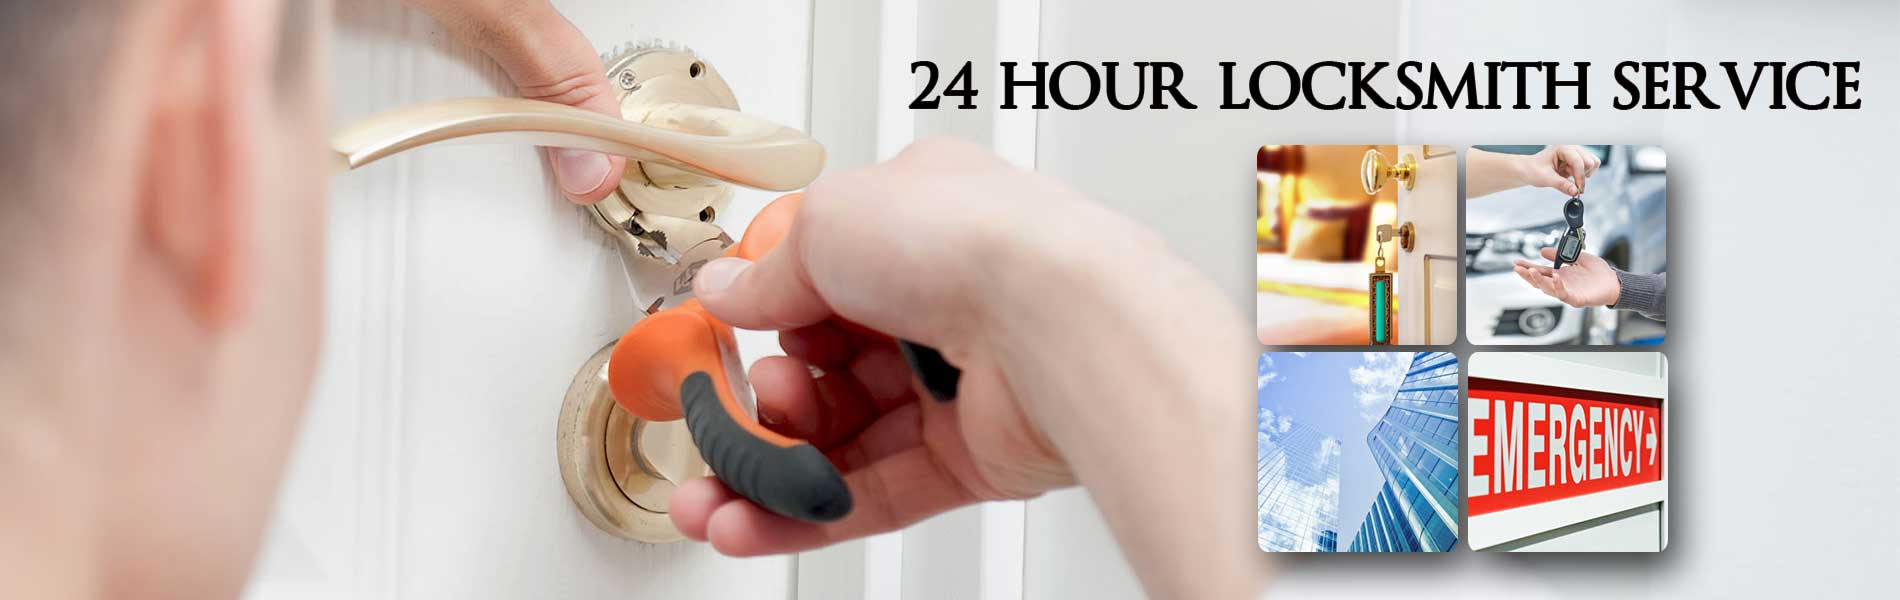 Tucson Lock And Locksmith Tucson, AZ 520-226-3772